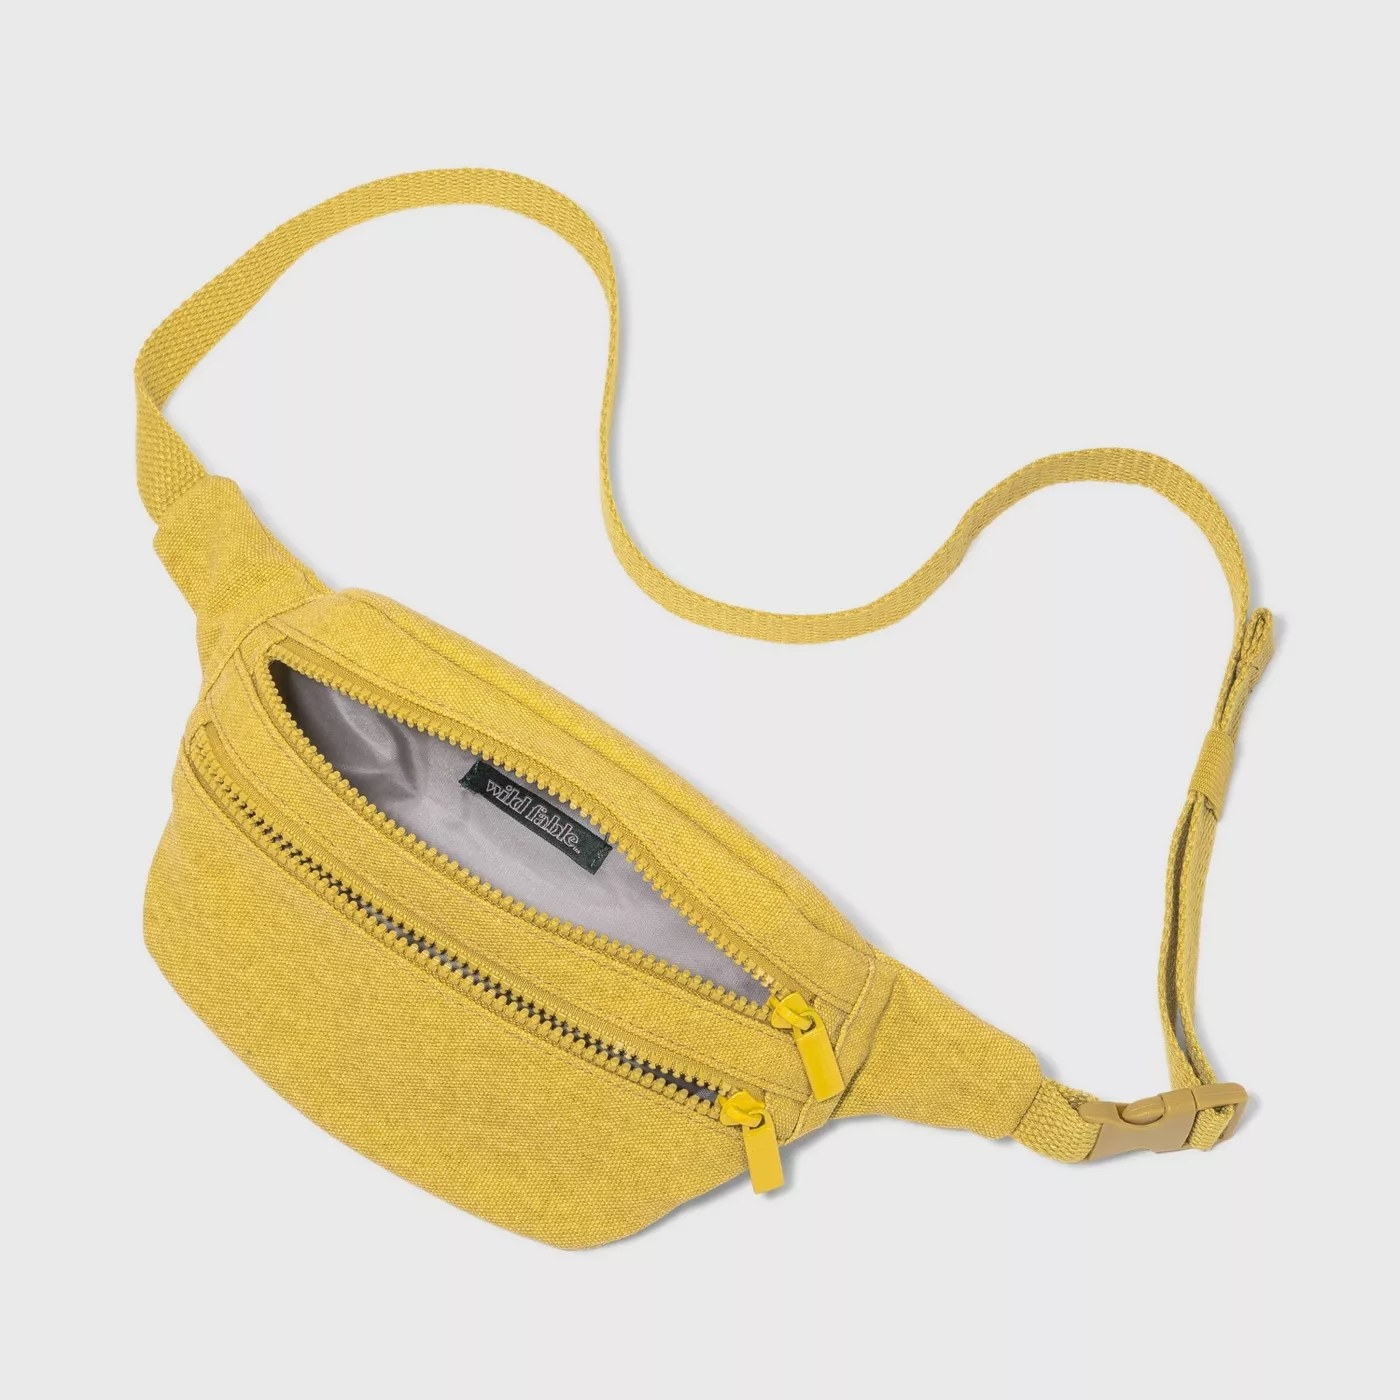 """The yellow fanny pack has two large zips and says """"wild fable"""" on the inside"""